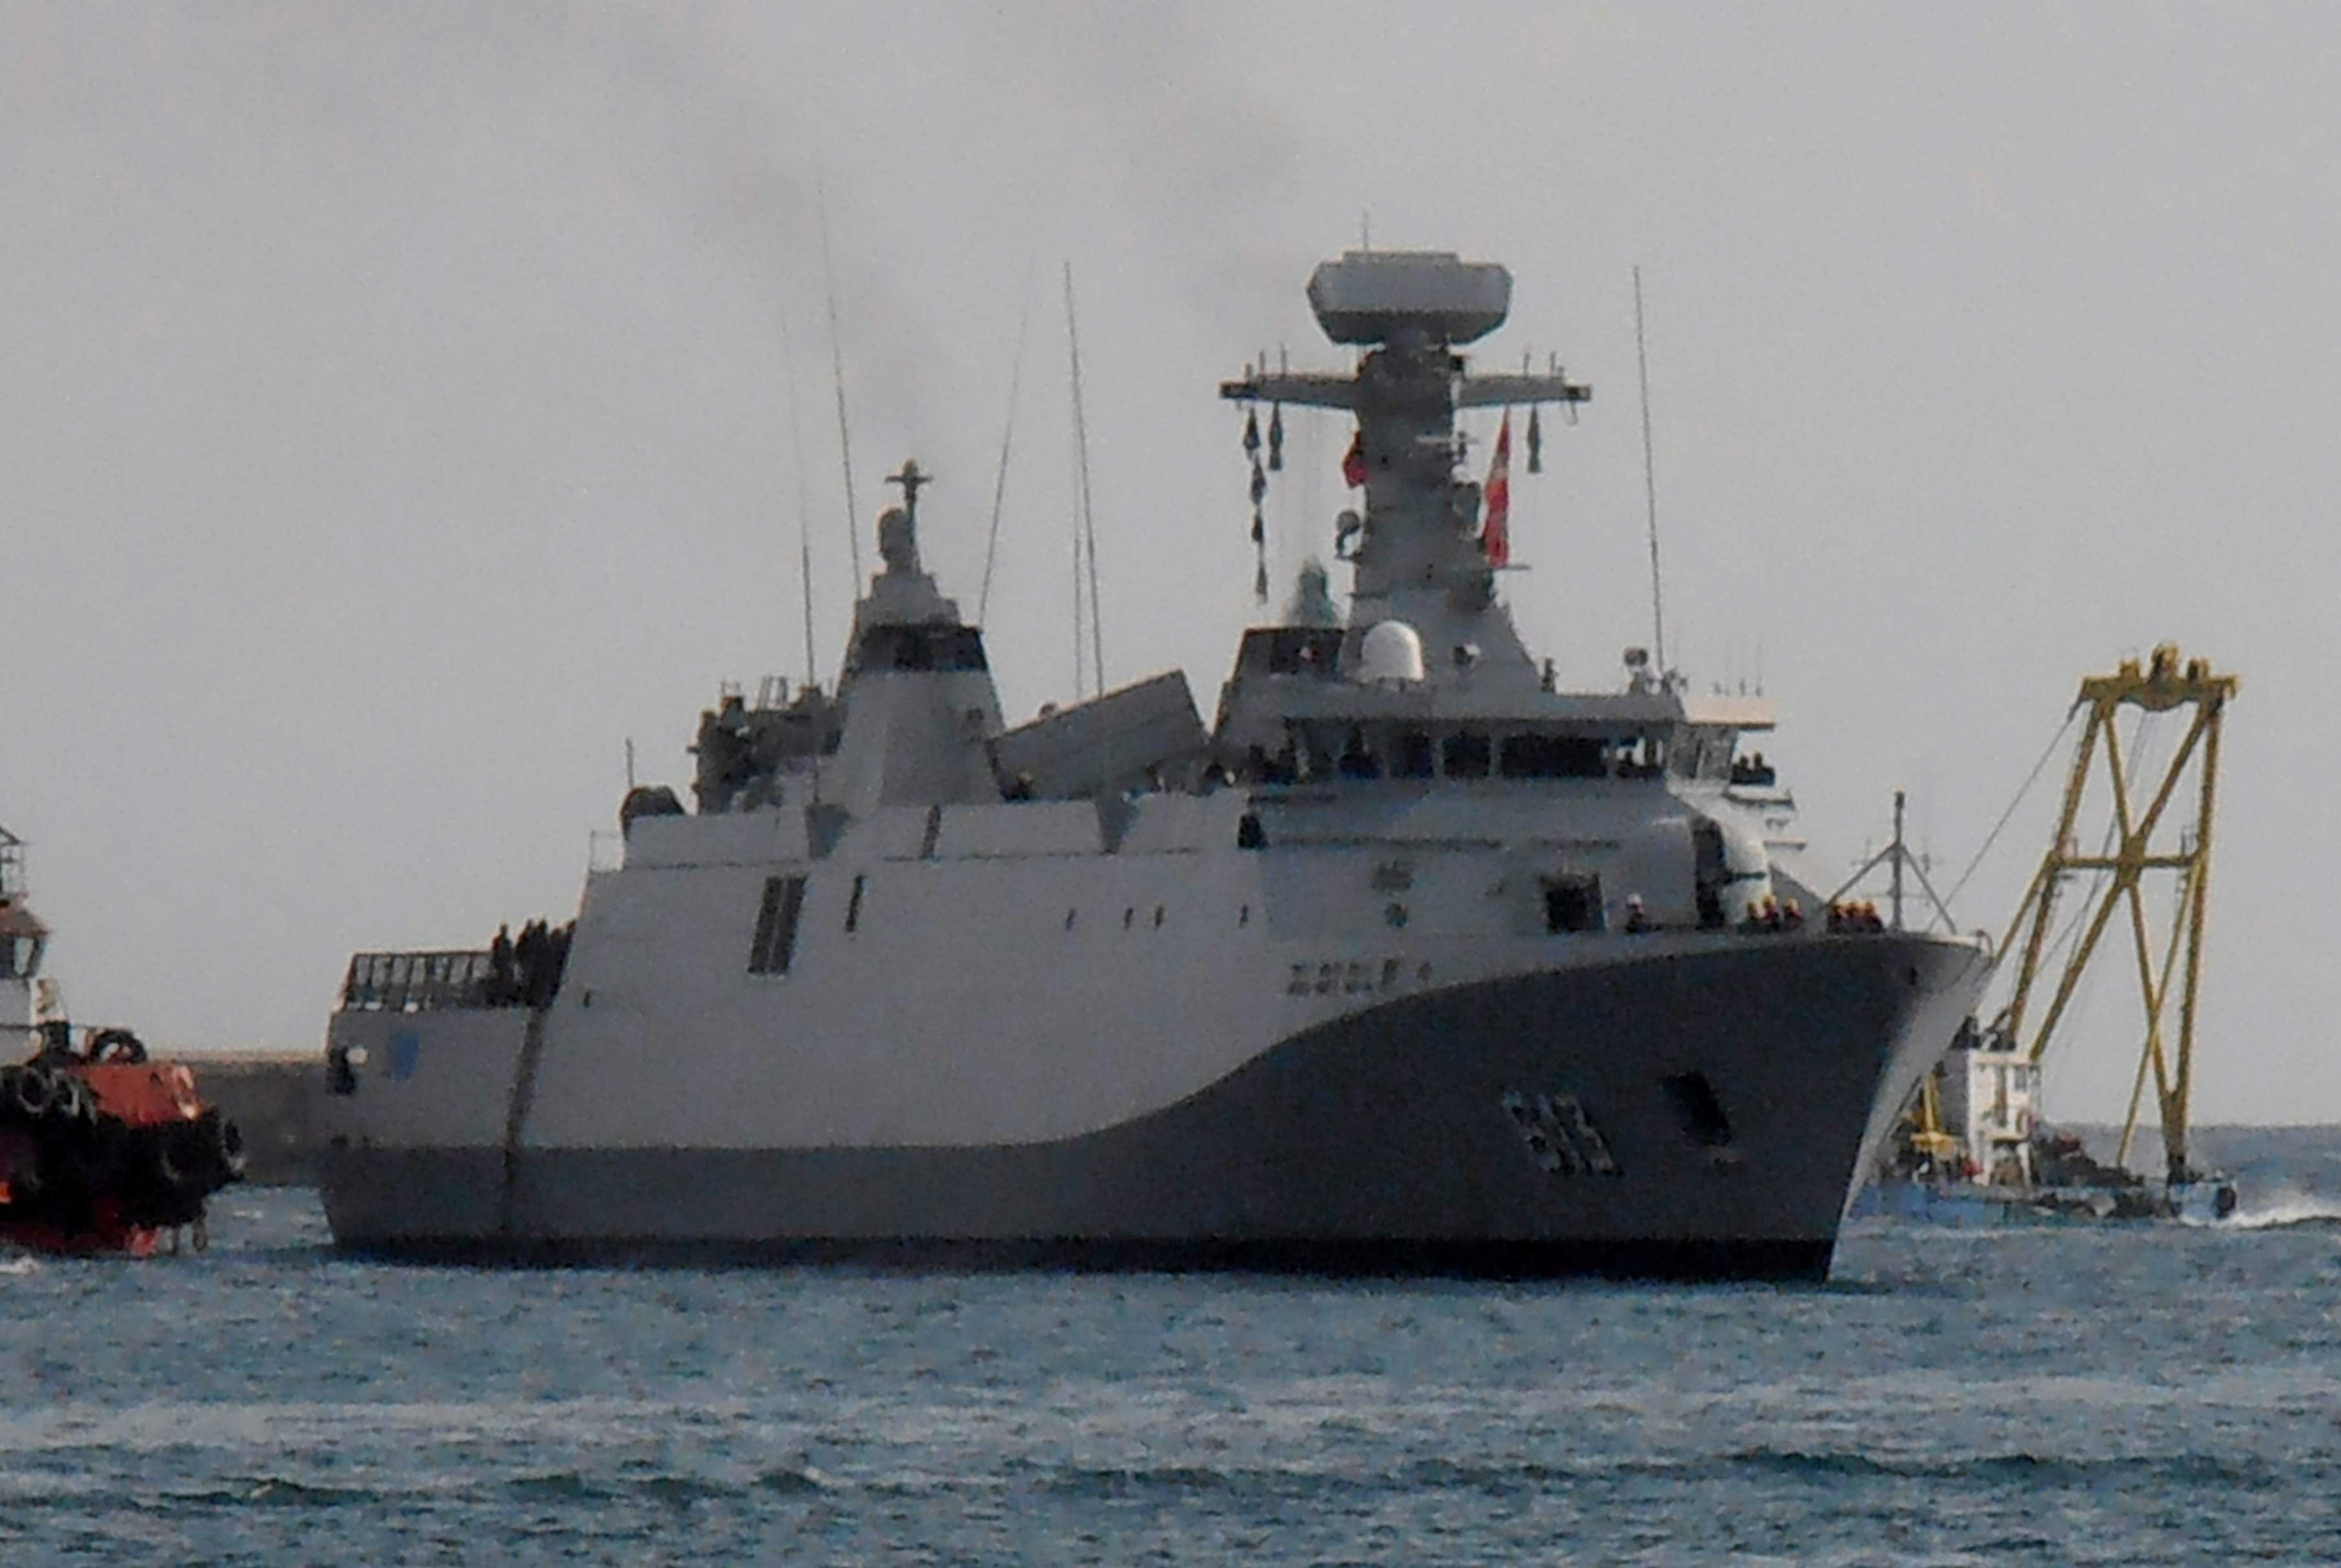 Royal Moroccan Navy Sigma class frigates / Frégates marocaines multimissions Sigma - Page 20 2230490